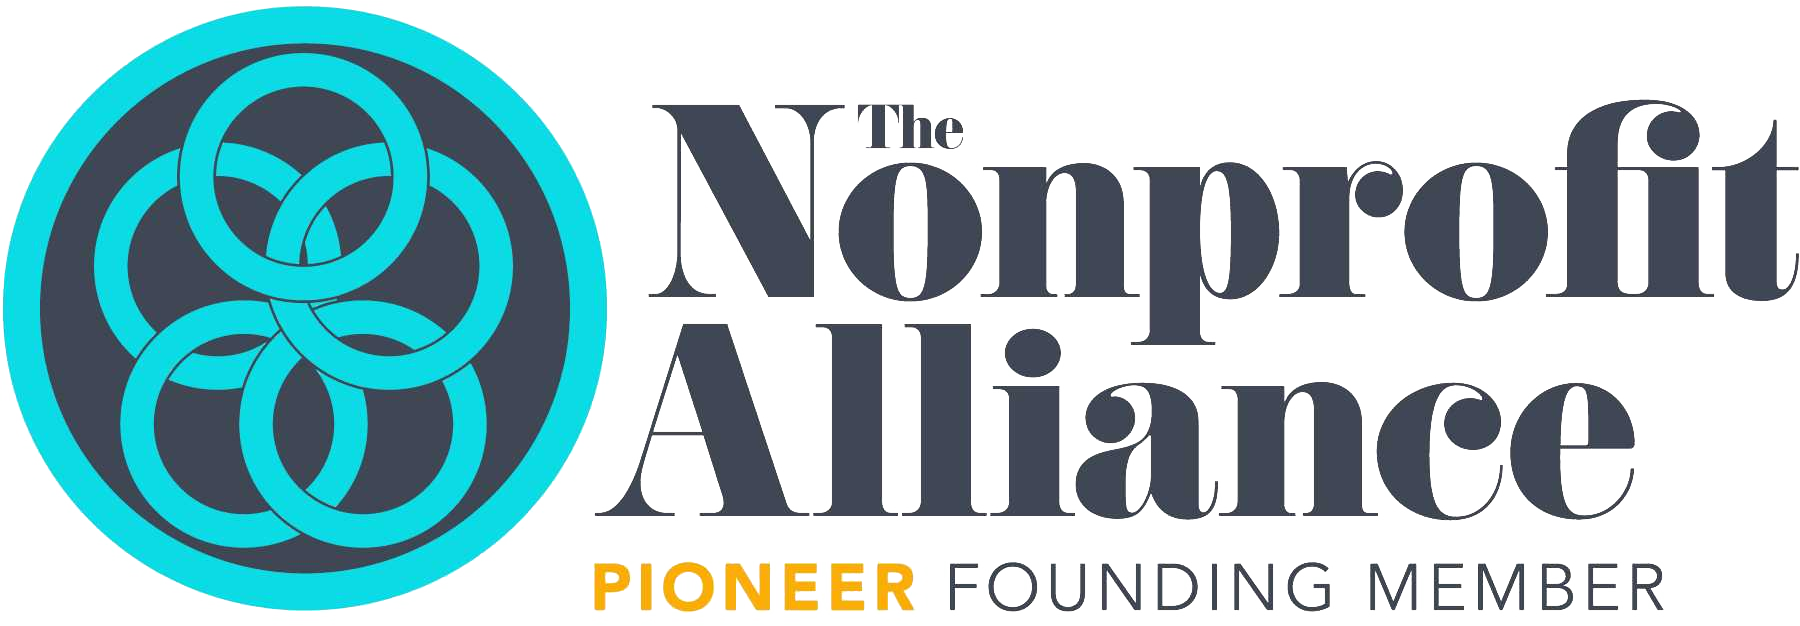 monprofit alliance